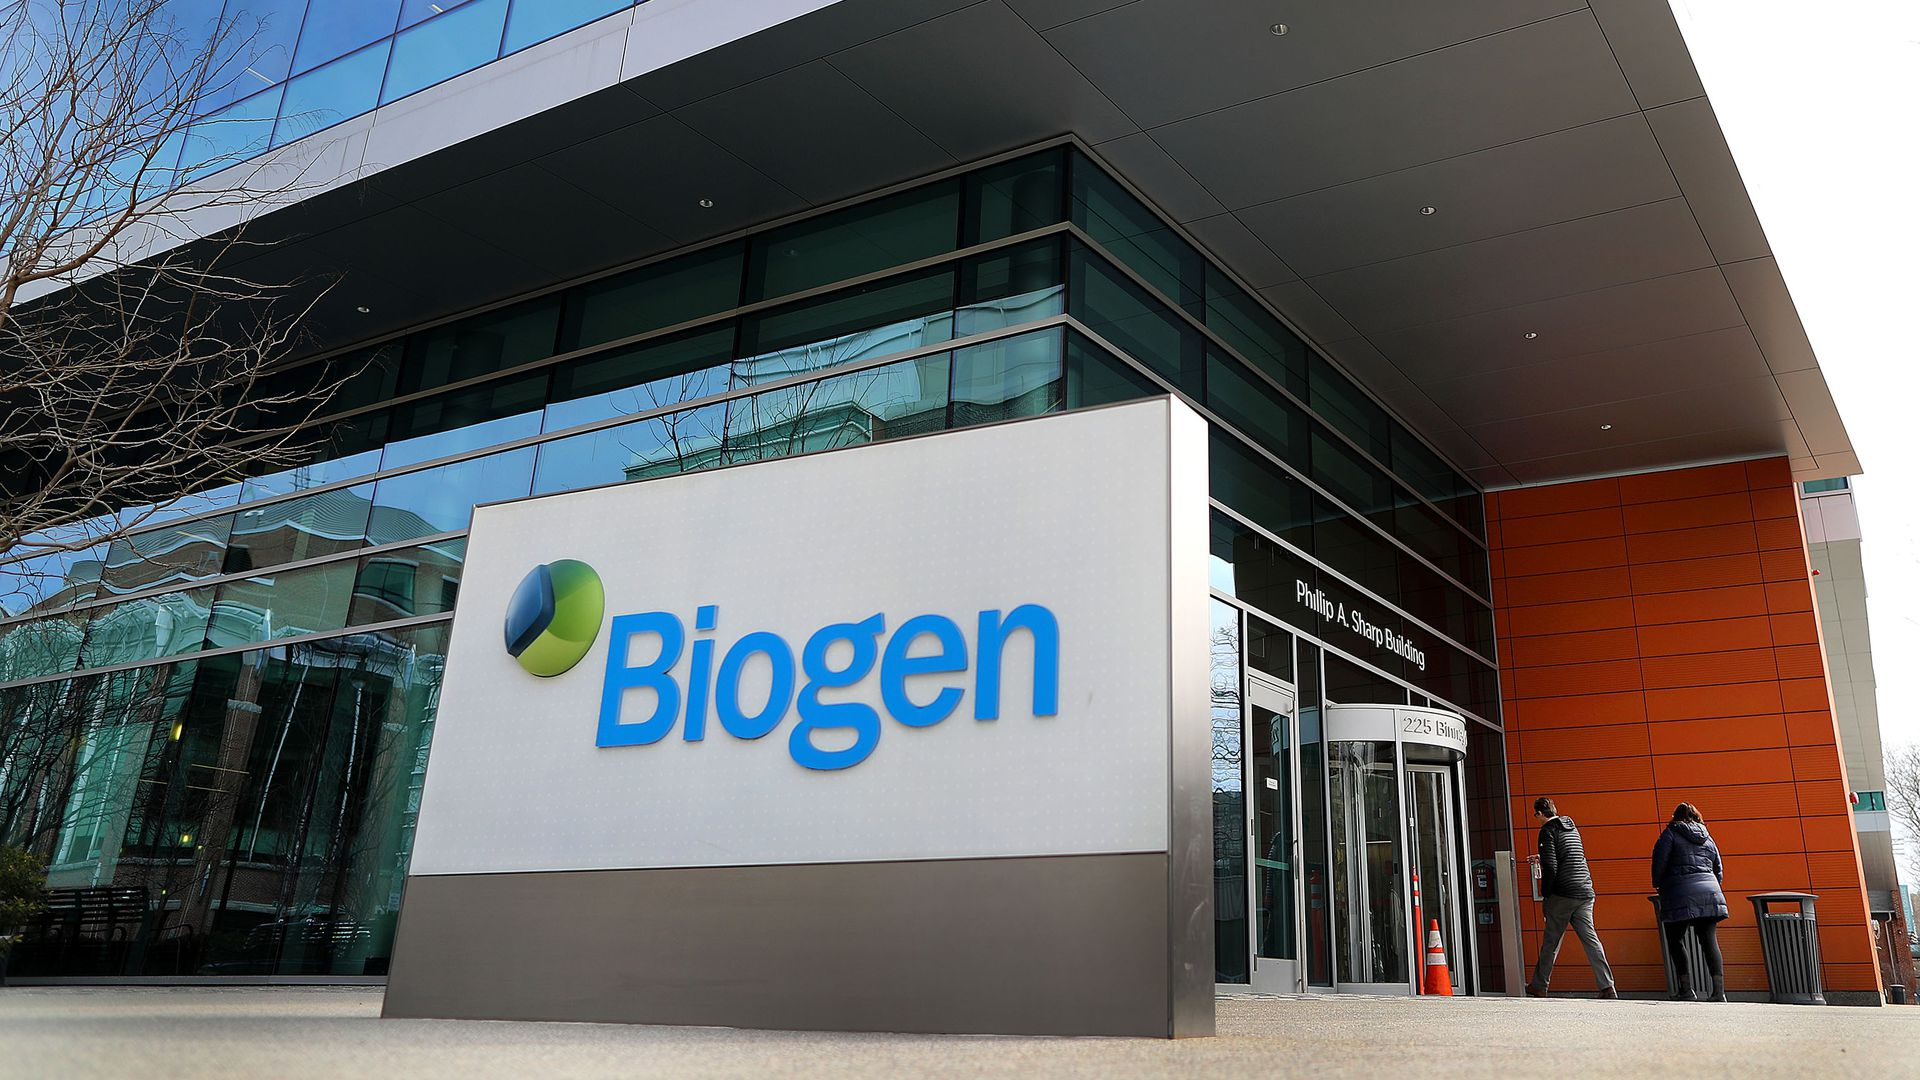 A Biogen sign in front of its headquarters building.